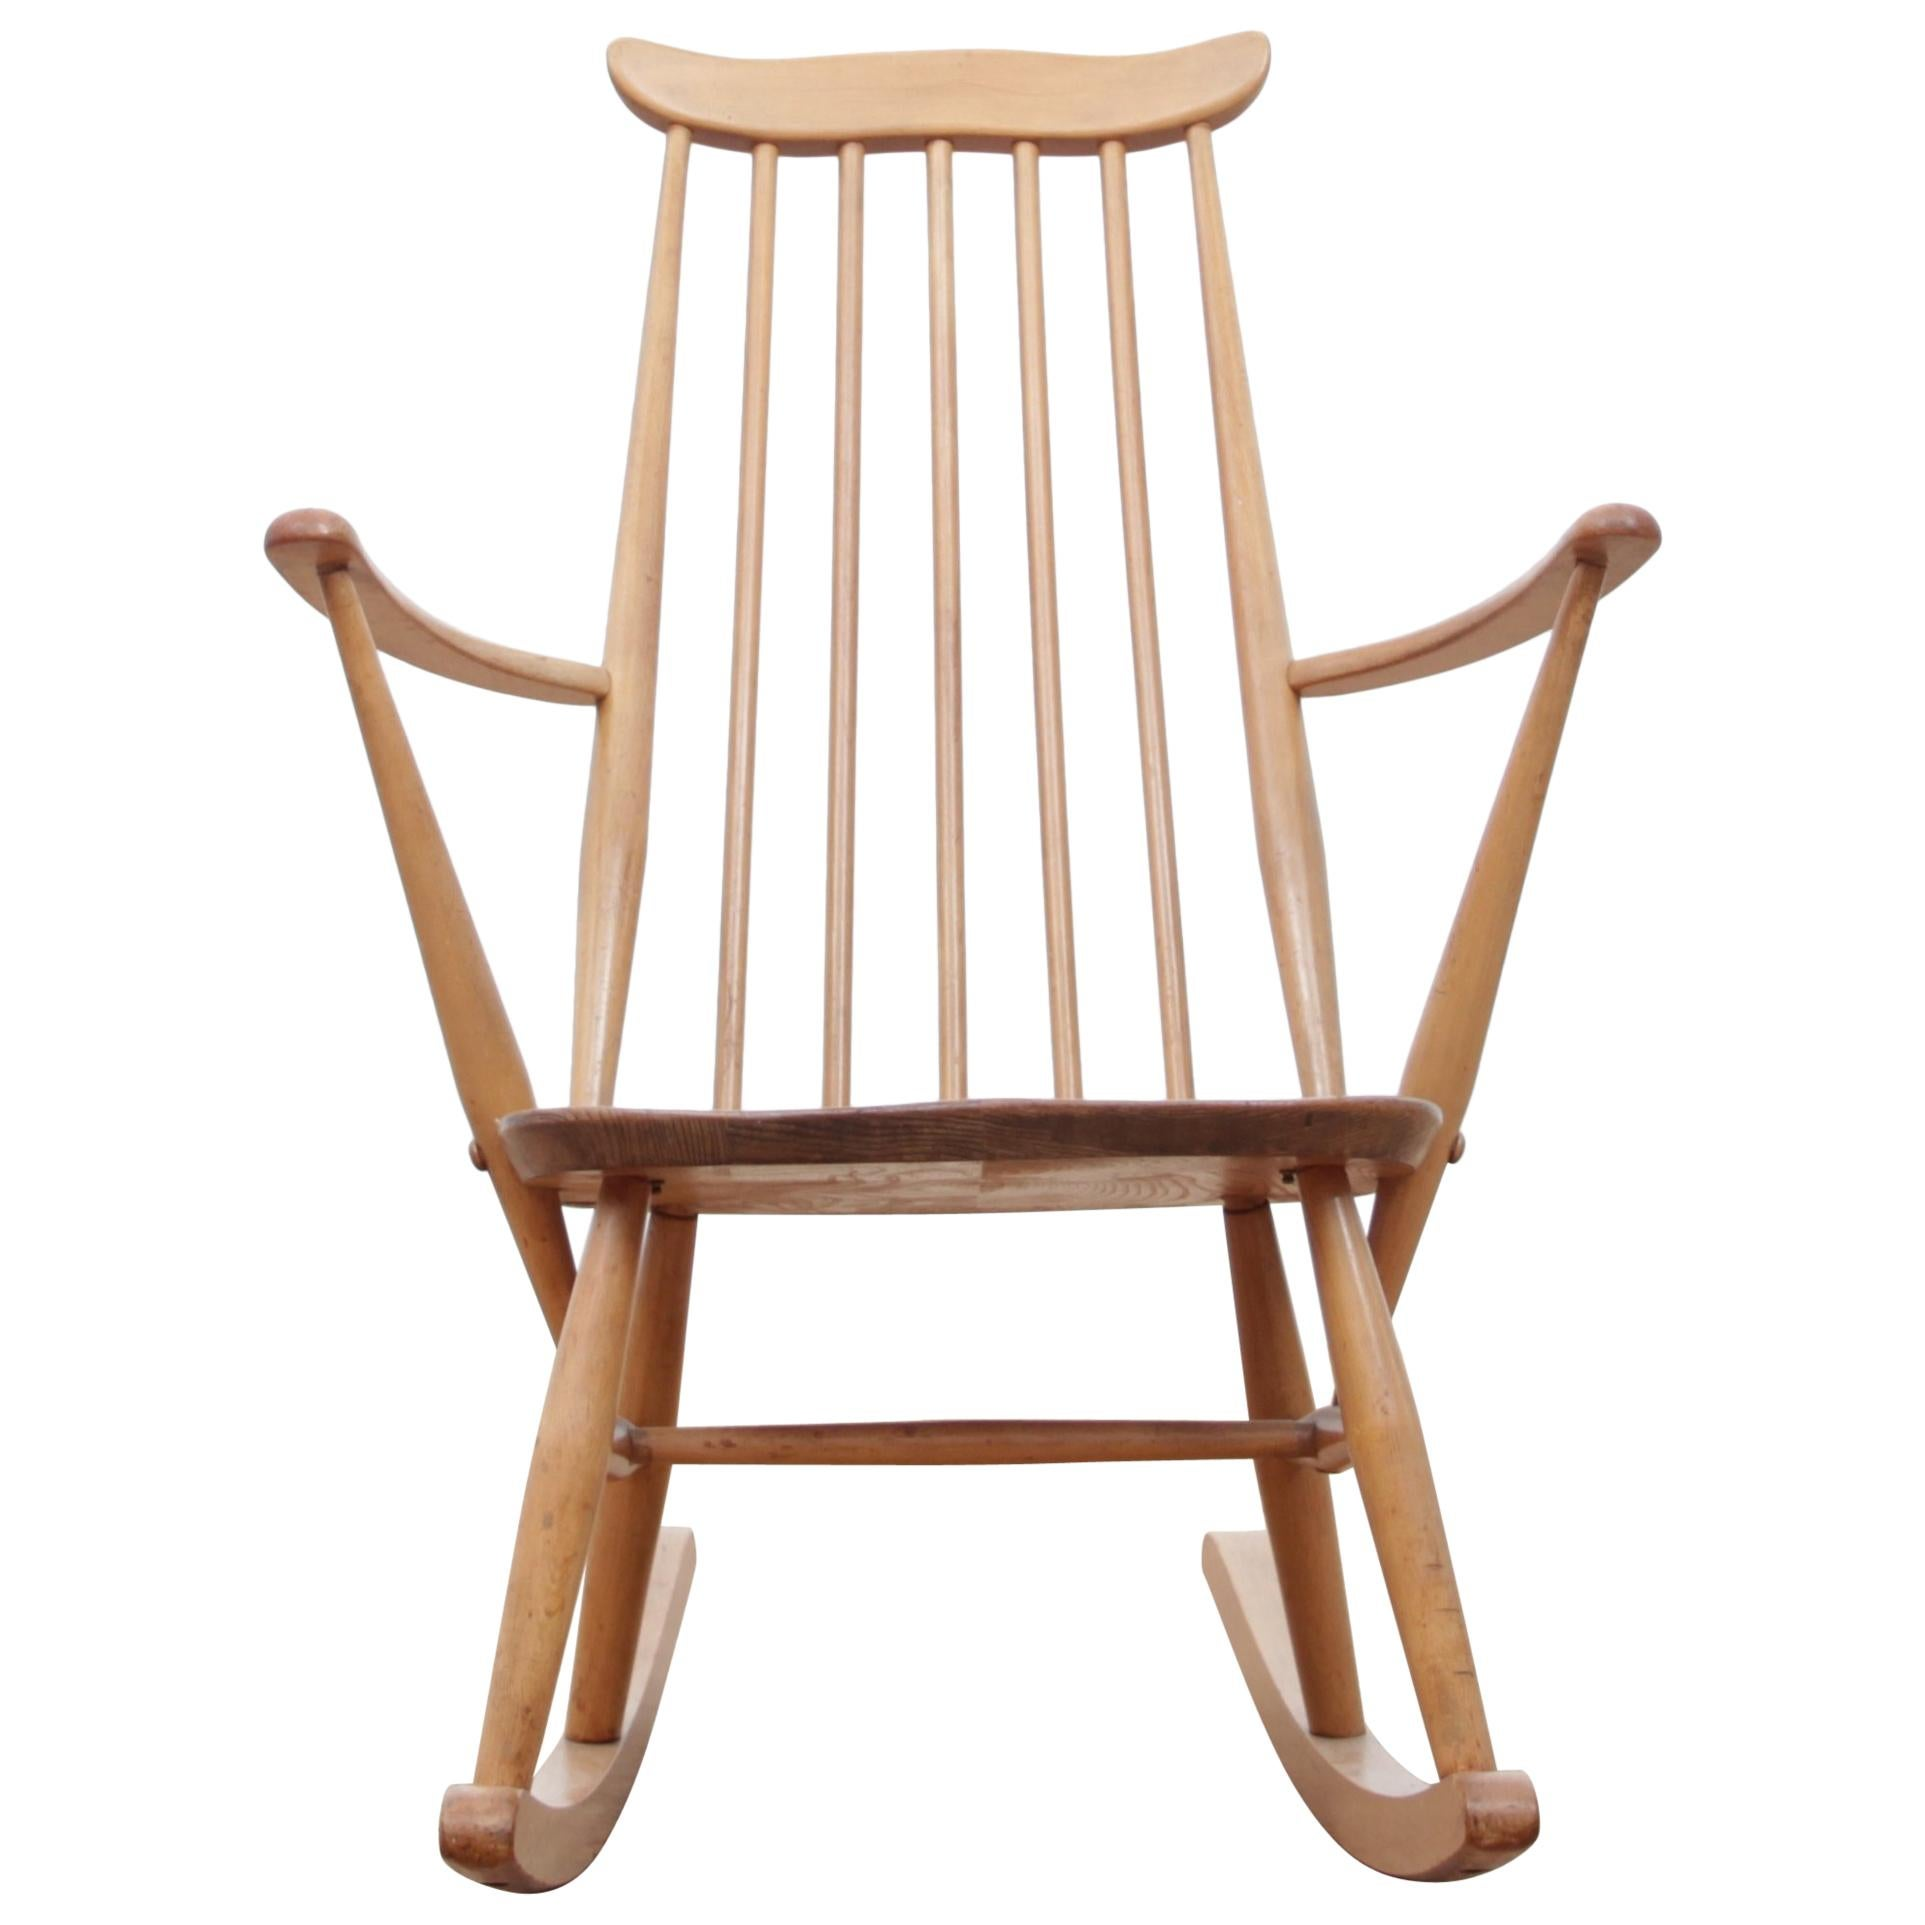 Child Wooden Rocking Chair Rare Antique Rocking Chair For Children American Rocker For Child Or Toy Bear